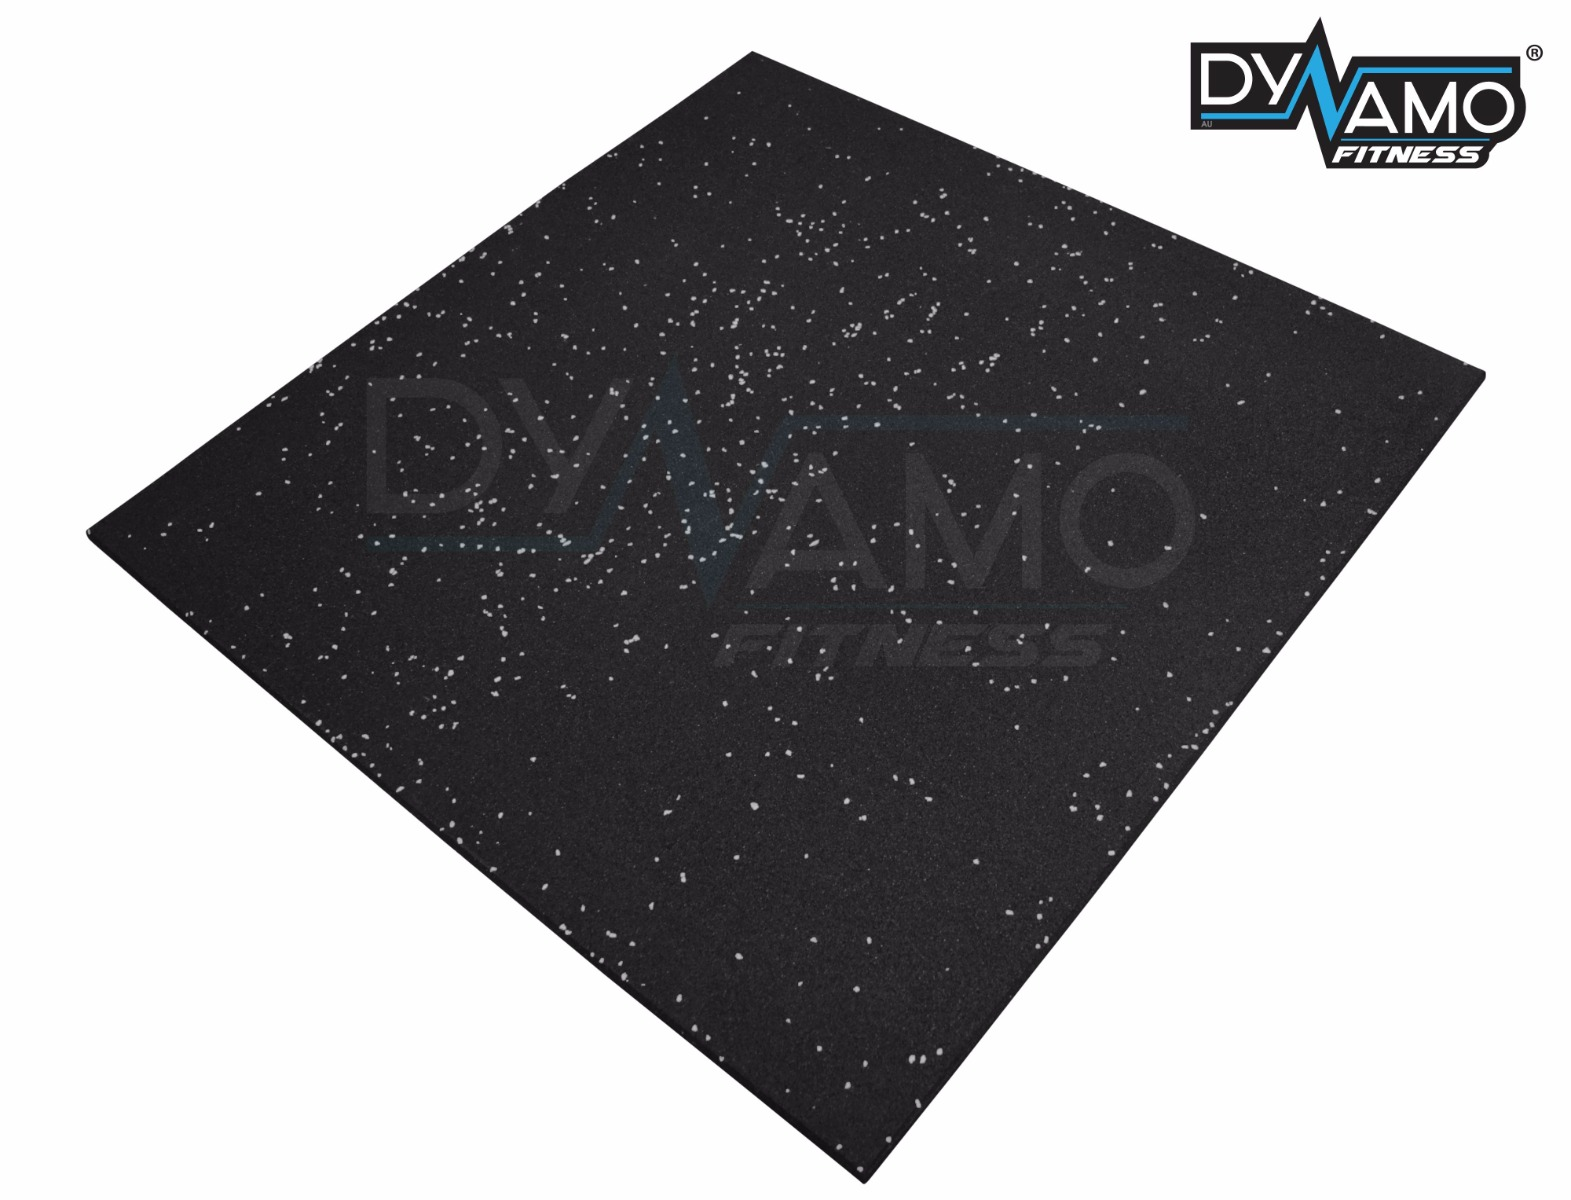 Rubber gym flooring tiles commercial 1mx1mx15mm thick black with rubber gym flooring tiles commercial 1mx1mx15mm thick black with white fleck doublecrazyfo Gallery